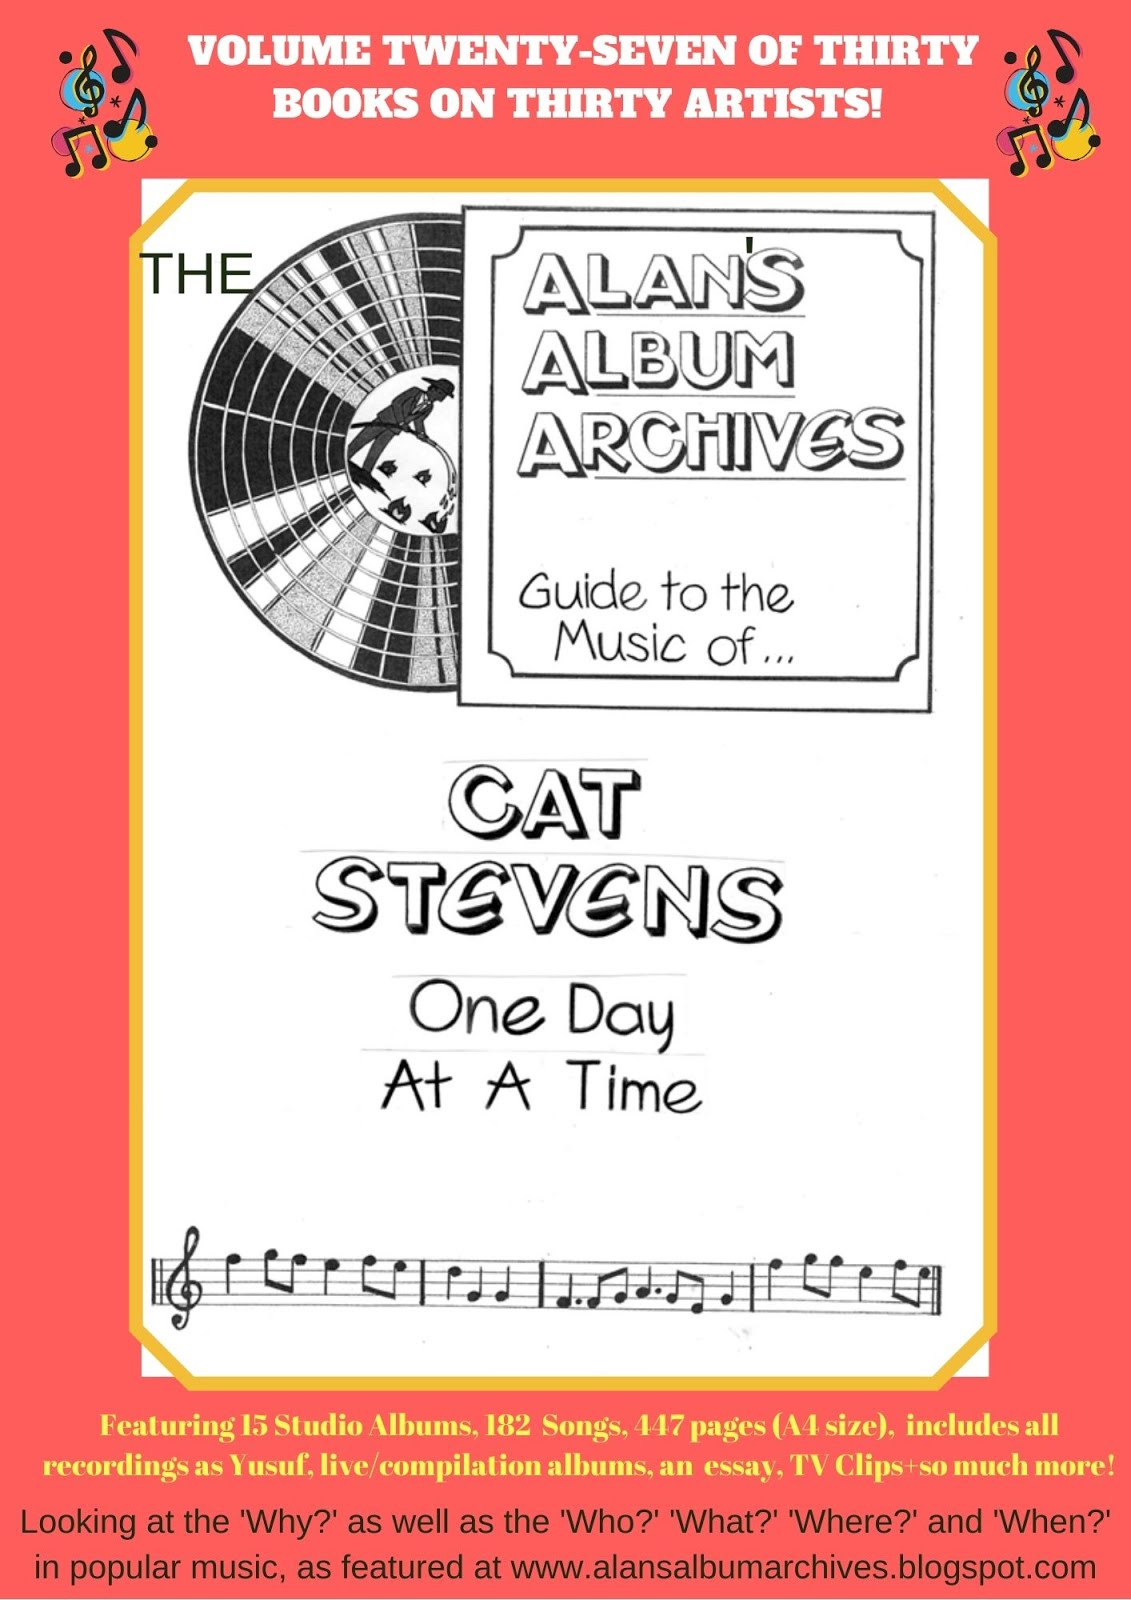 'One Day At A Time - The Alan's Album Archives Guide To The Music Of...Cat Stevens'